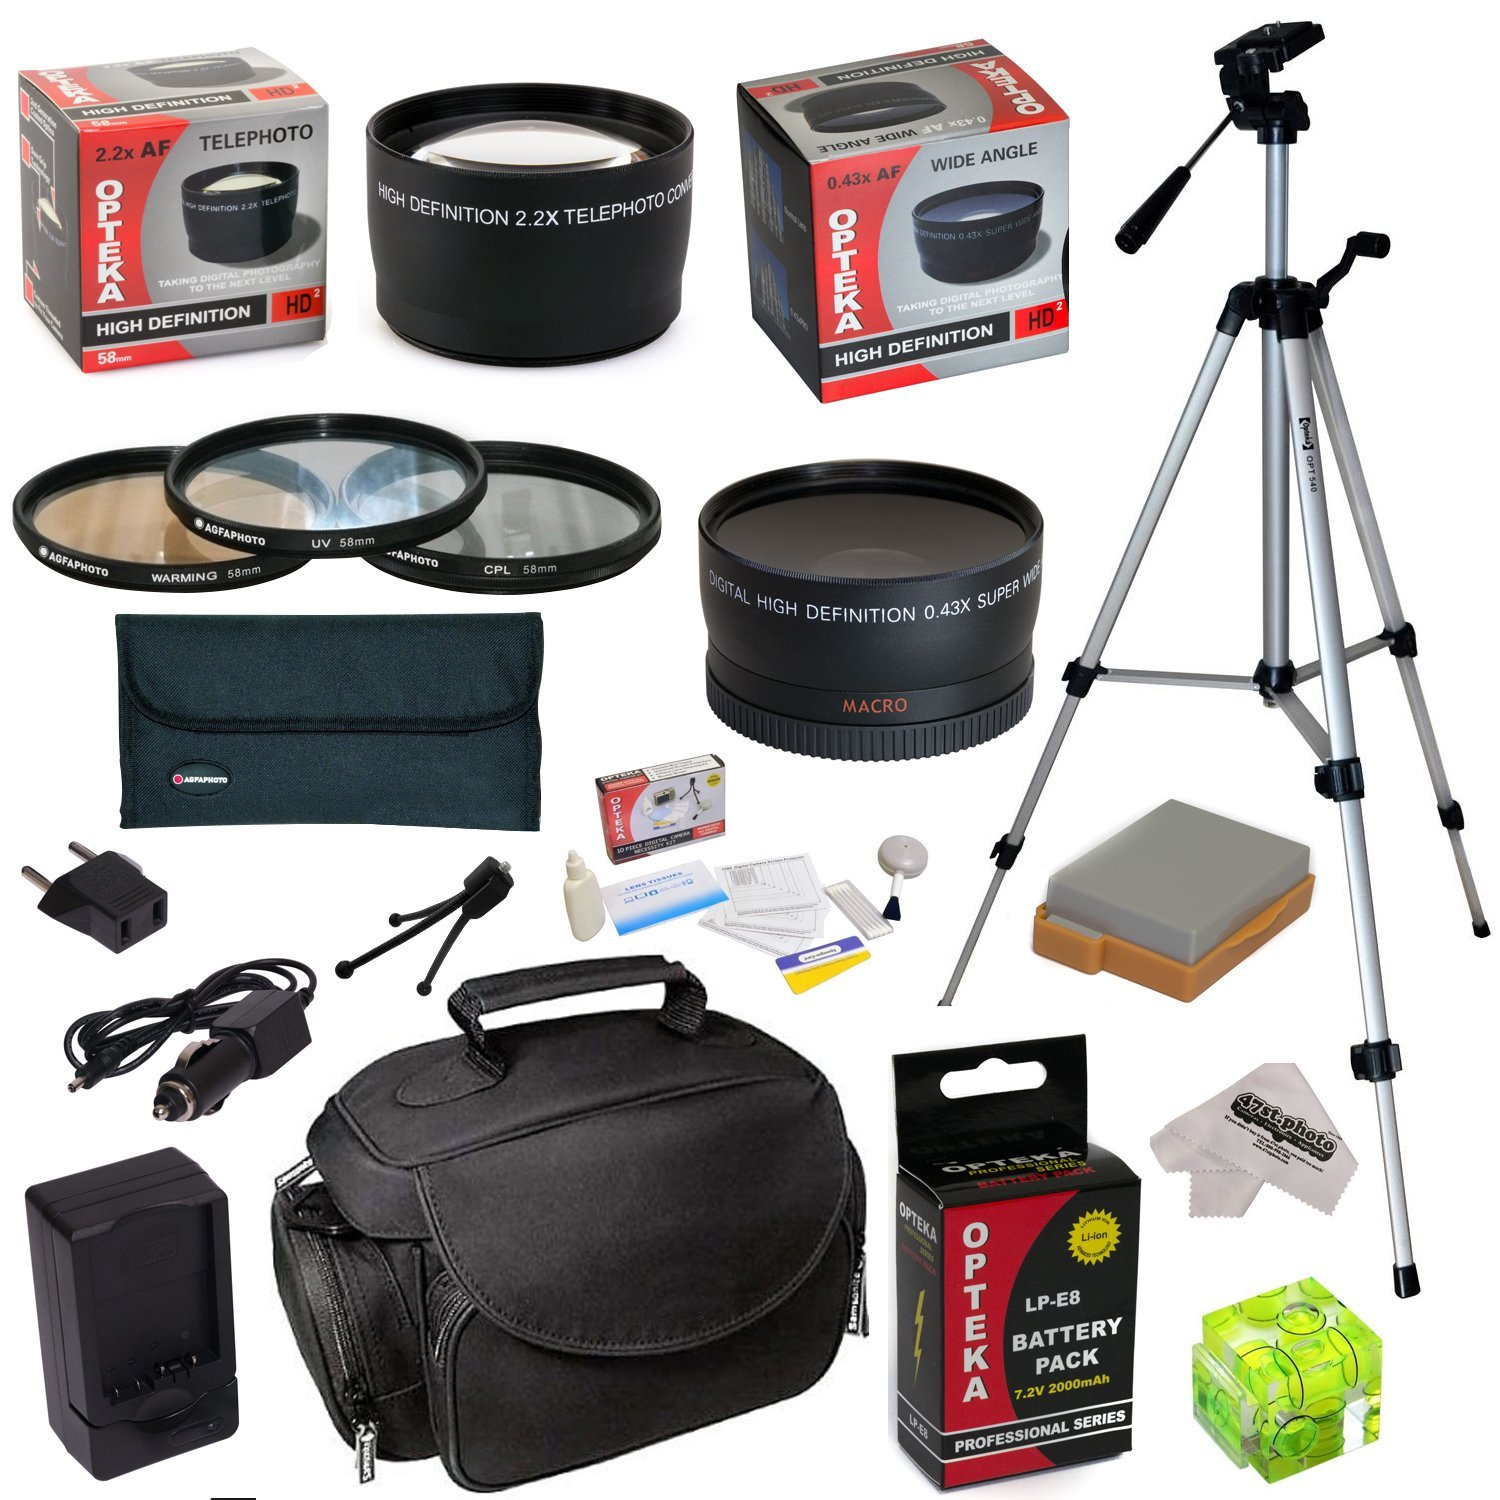 Must Have Accessory Kit For Canon EOS T2i T3i T4i T5i DSLR Camera with 58mm 3 Piece Filter Kit, 2.2x Lens, 0.43x Fisheye Lens, LP-E8 Battery with Charger, Tripod, Case, Three Axis Level, Cleaning Kit